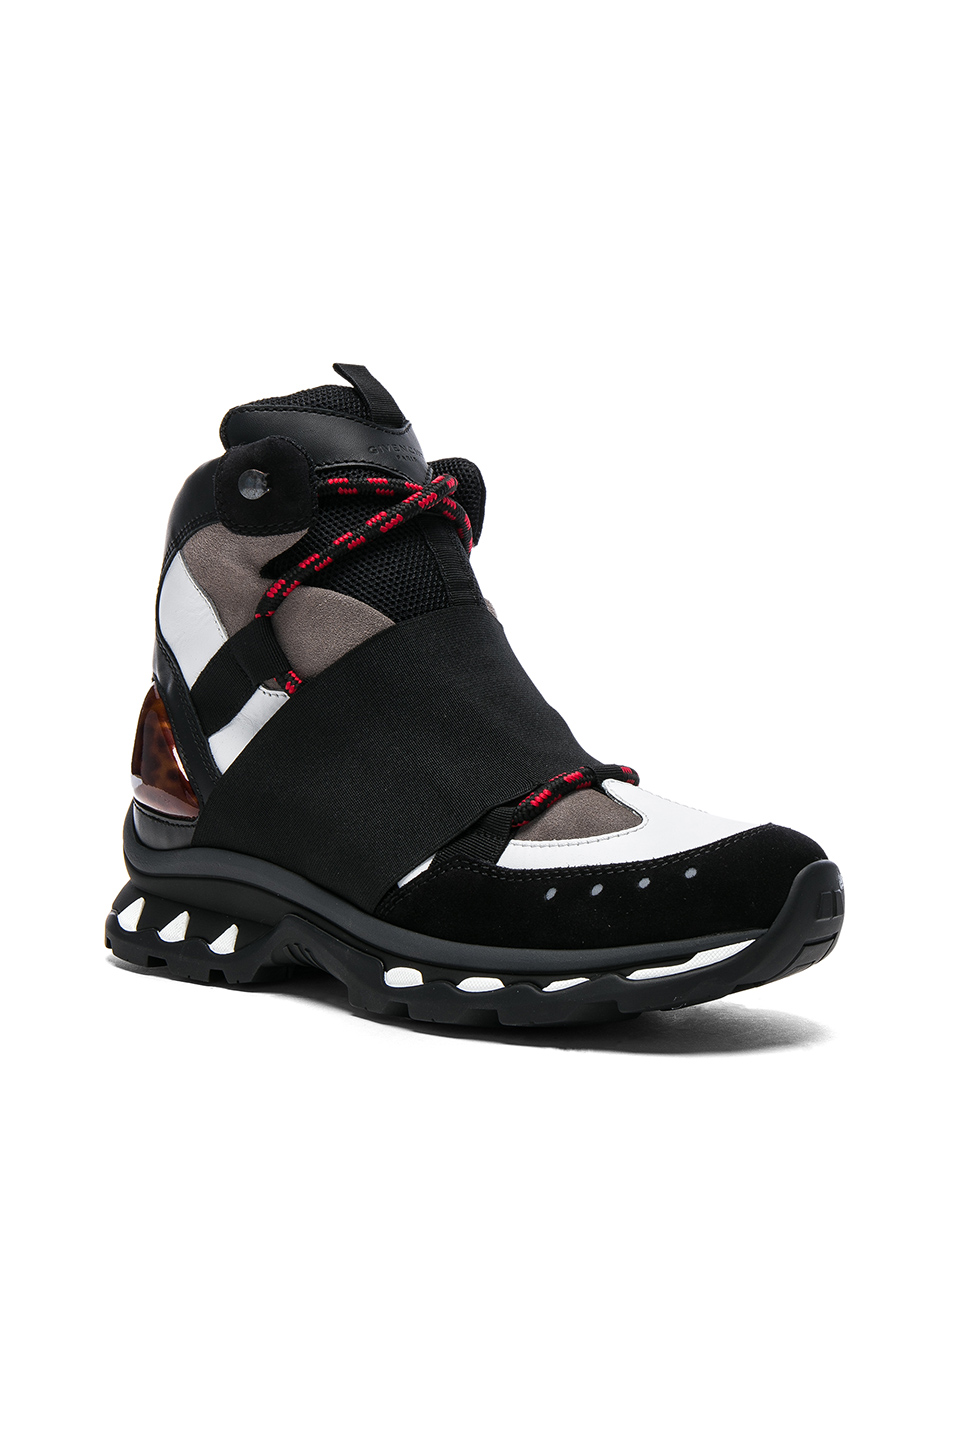 Givenchy Trainer Shoes in Black,White